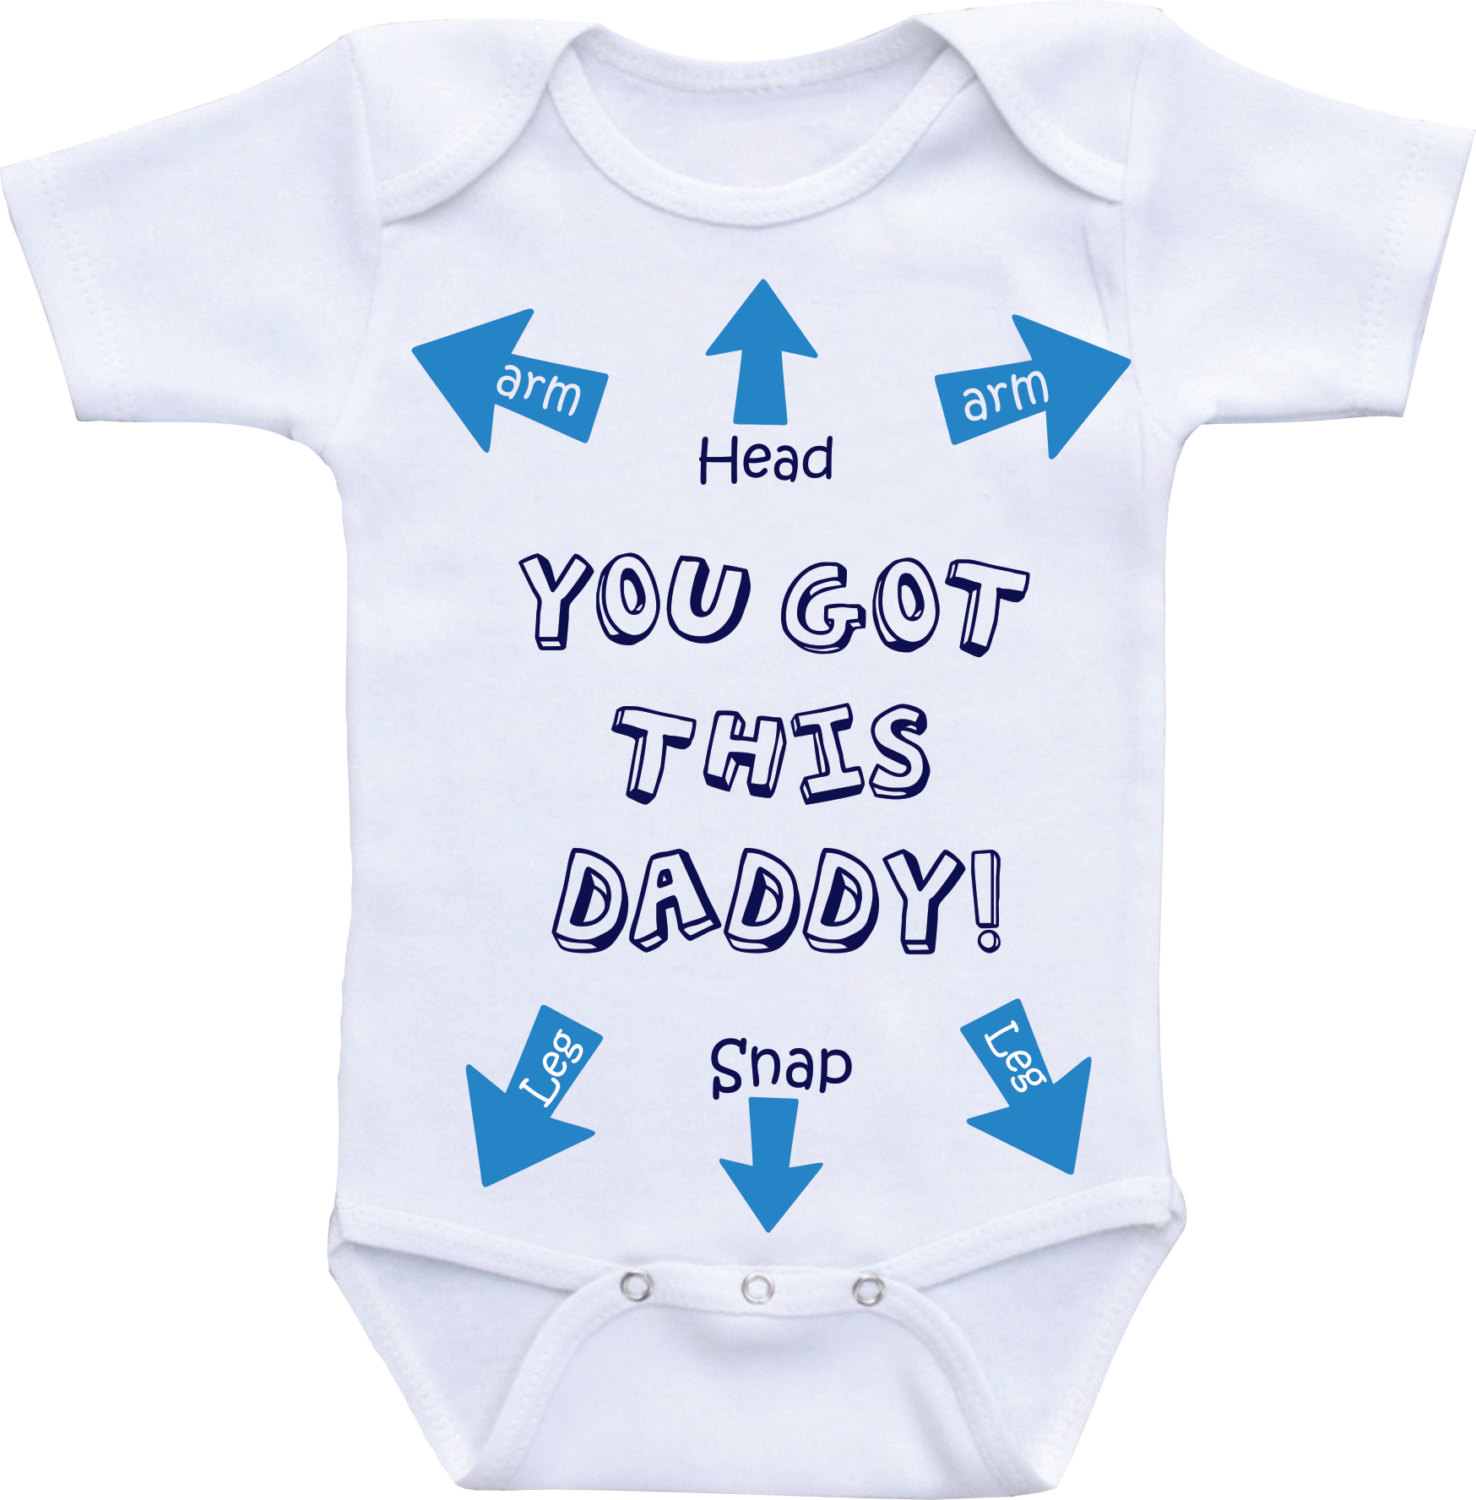 Enthralling Personal Use Baby Baby Onesies Cheap Baby Onesies Nz A Baby Boy Squirmy Popple Baby Vest Drawing At Free Terrible Gifts baby Cute Baby Onesies